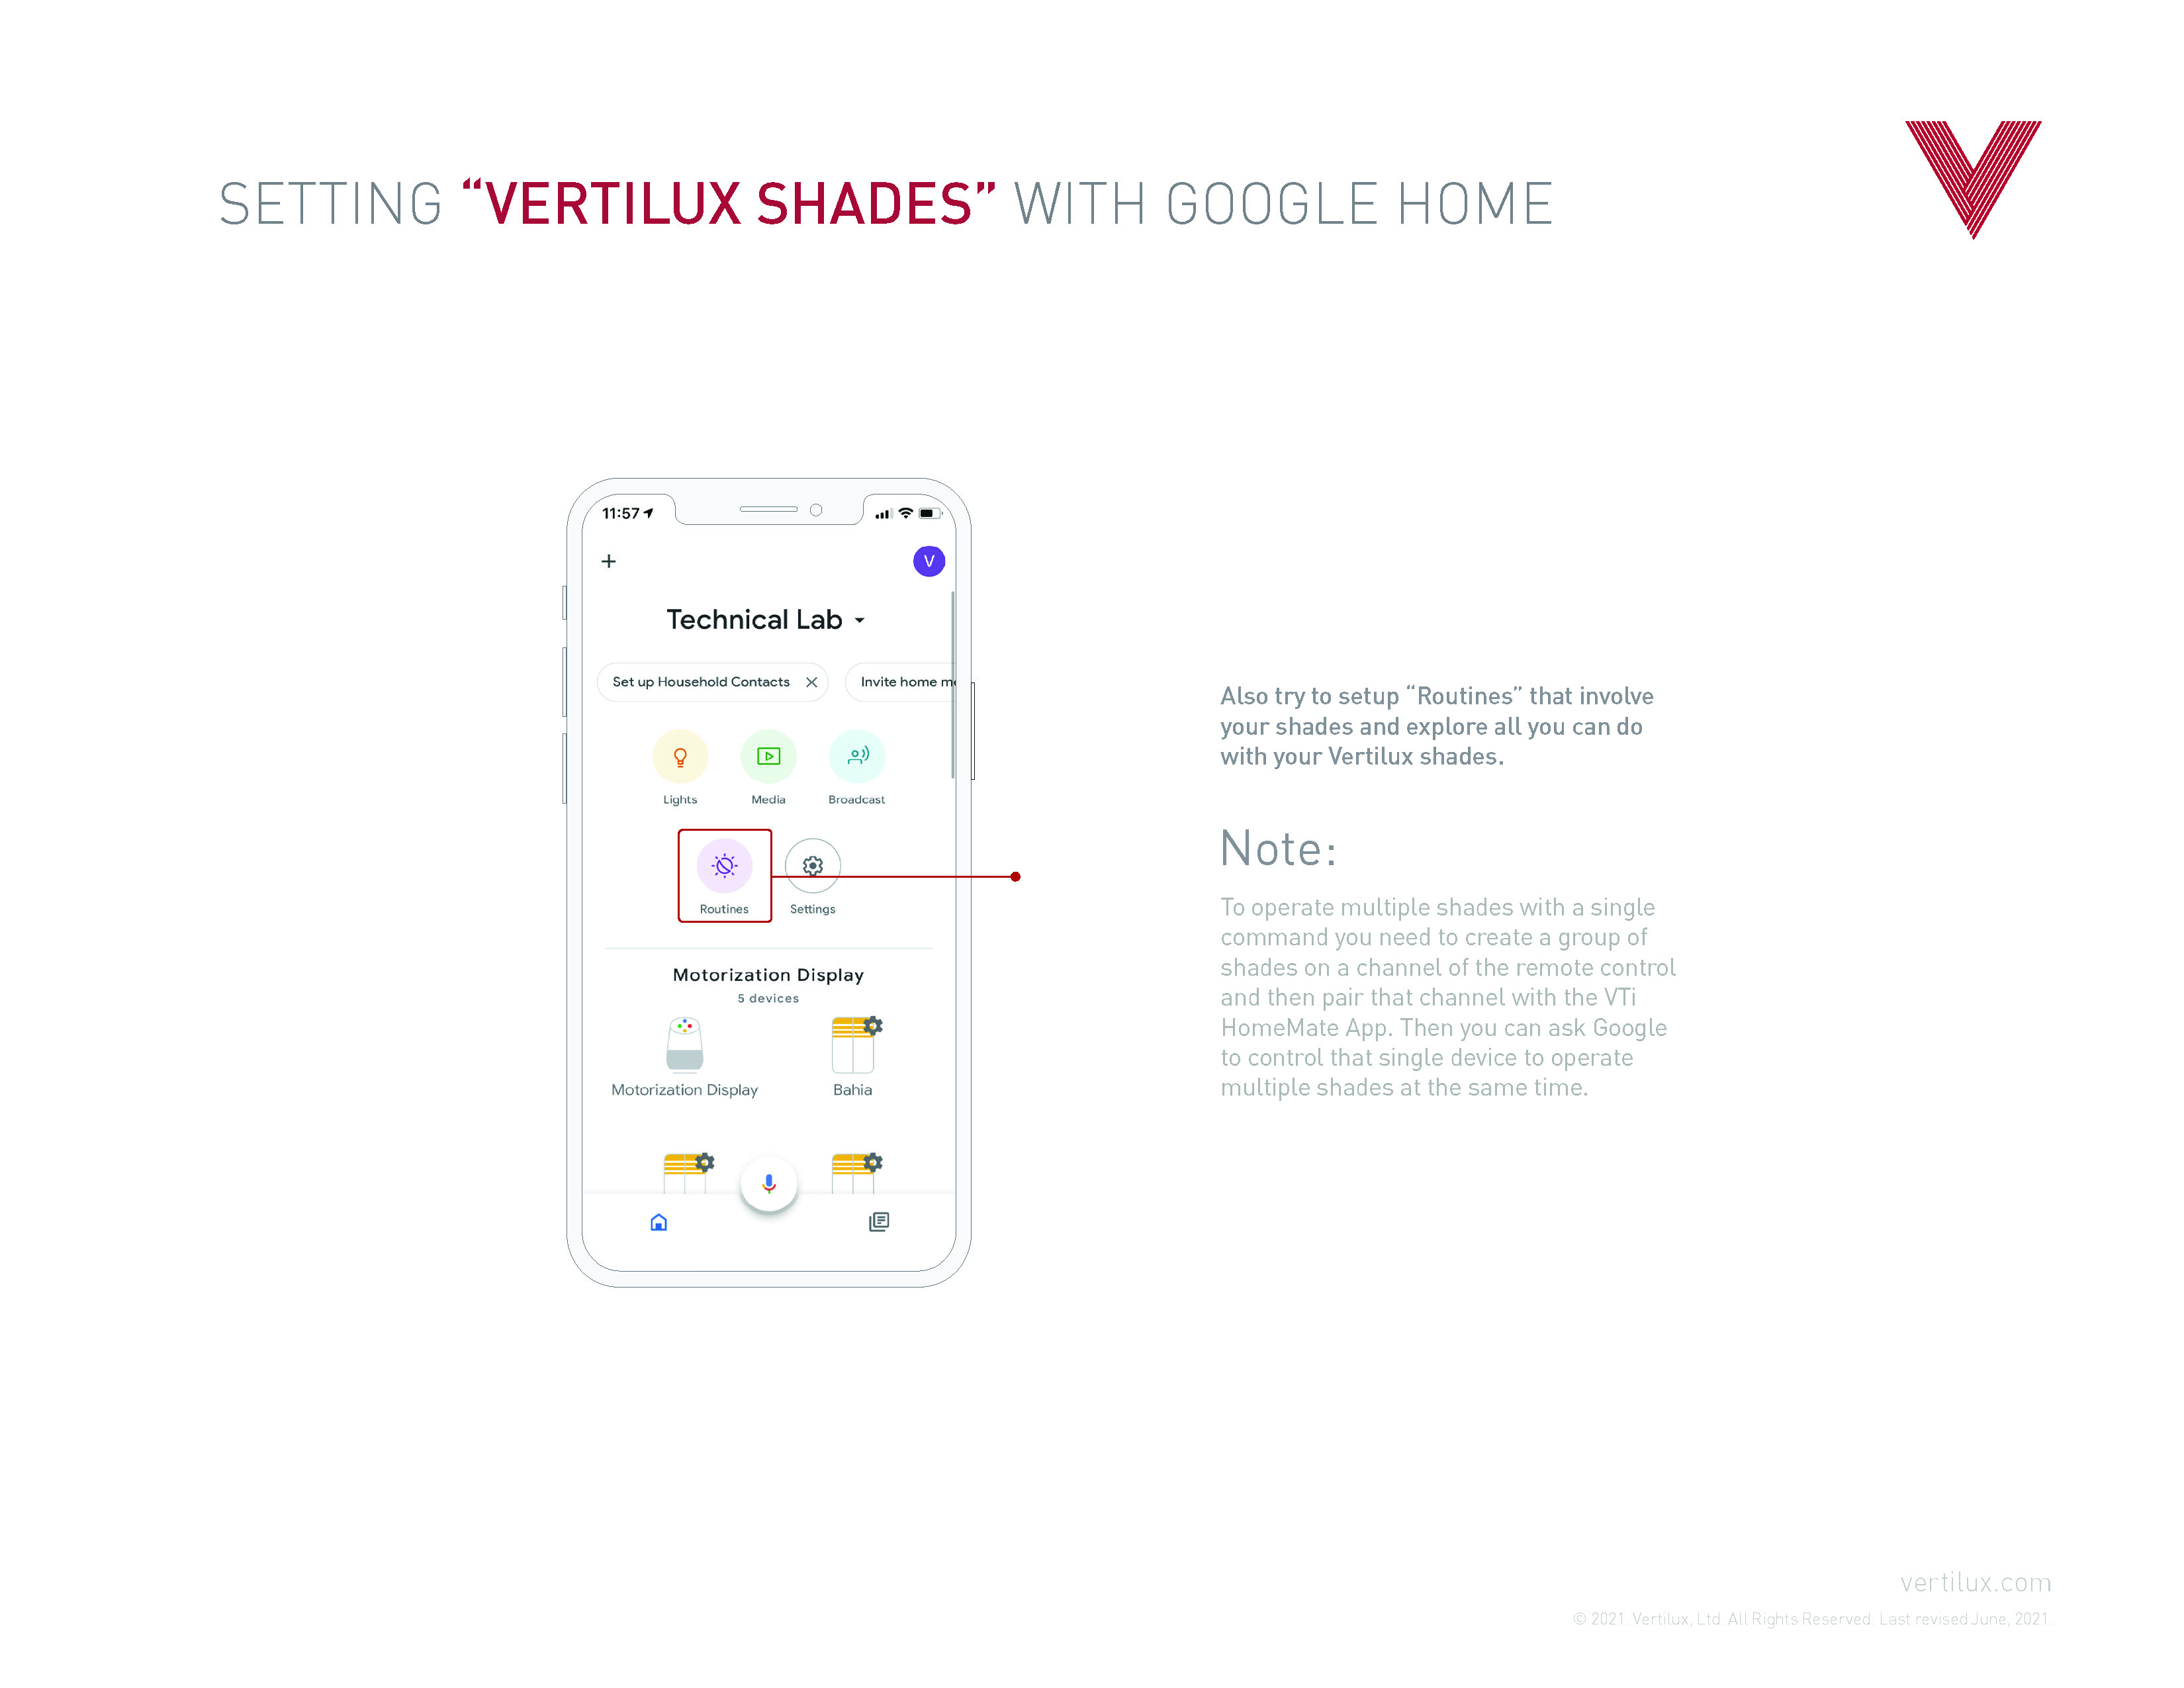 Google Home Integration Guide - Page 8